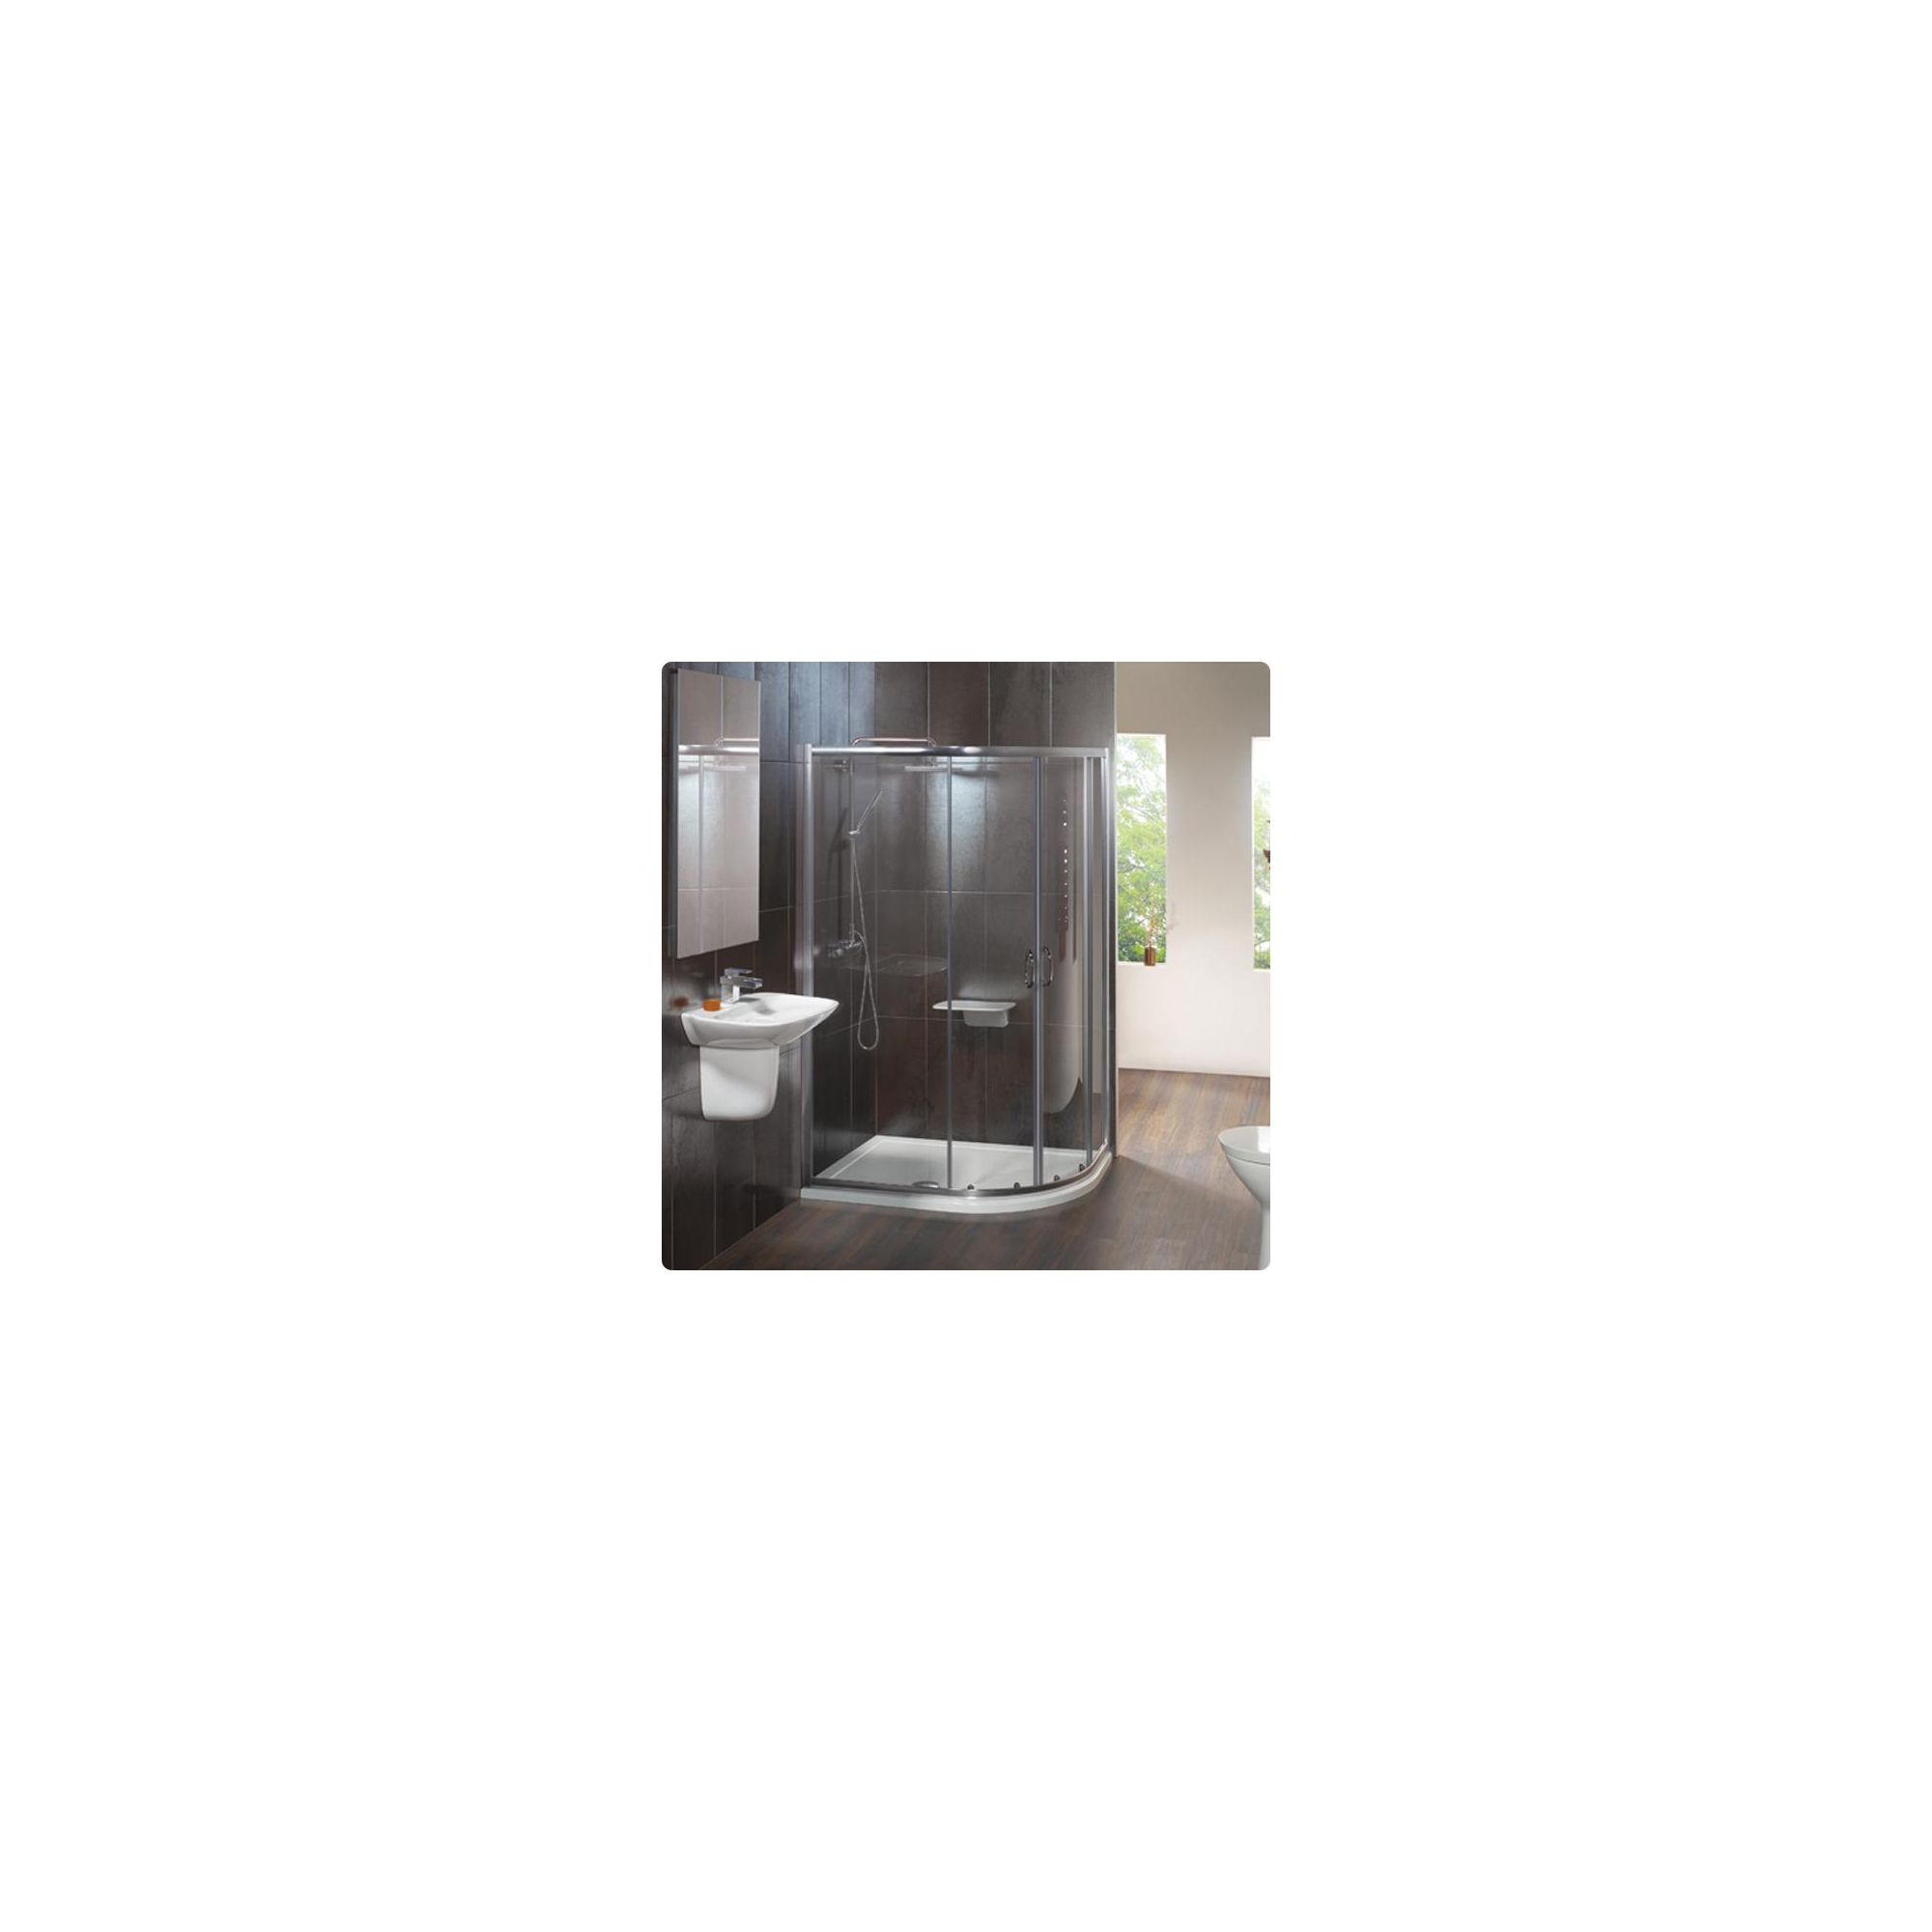 Balterley Offset Quadrant Double Shower Door, 1200mm x 900mm, 6mm Glass at Tesco Direct